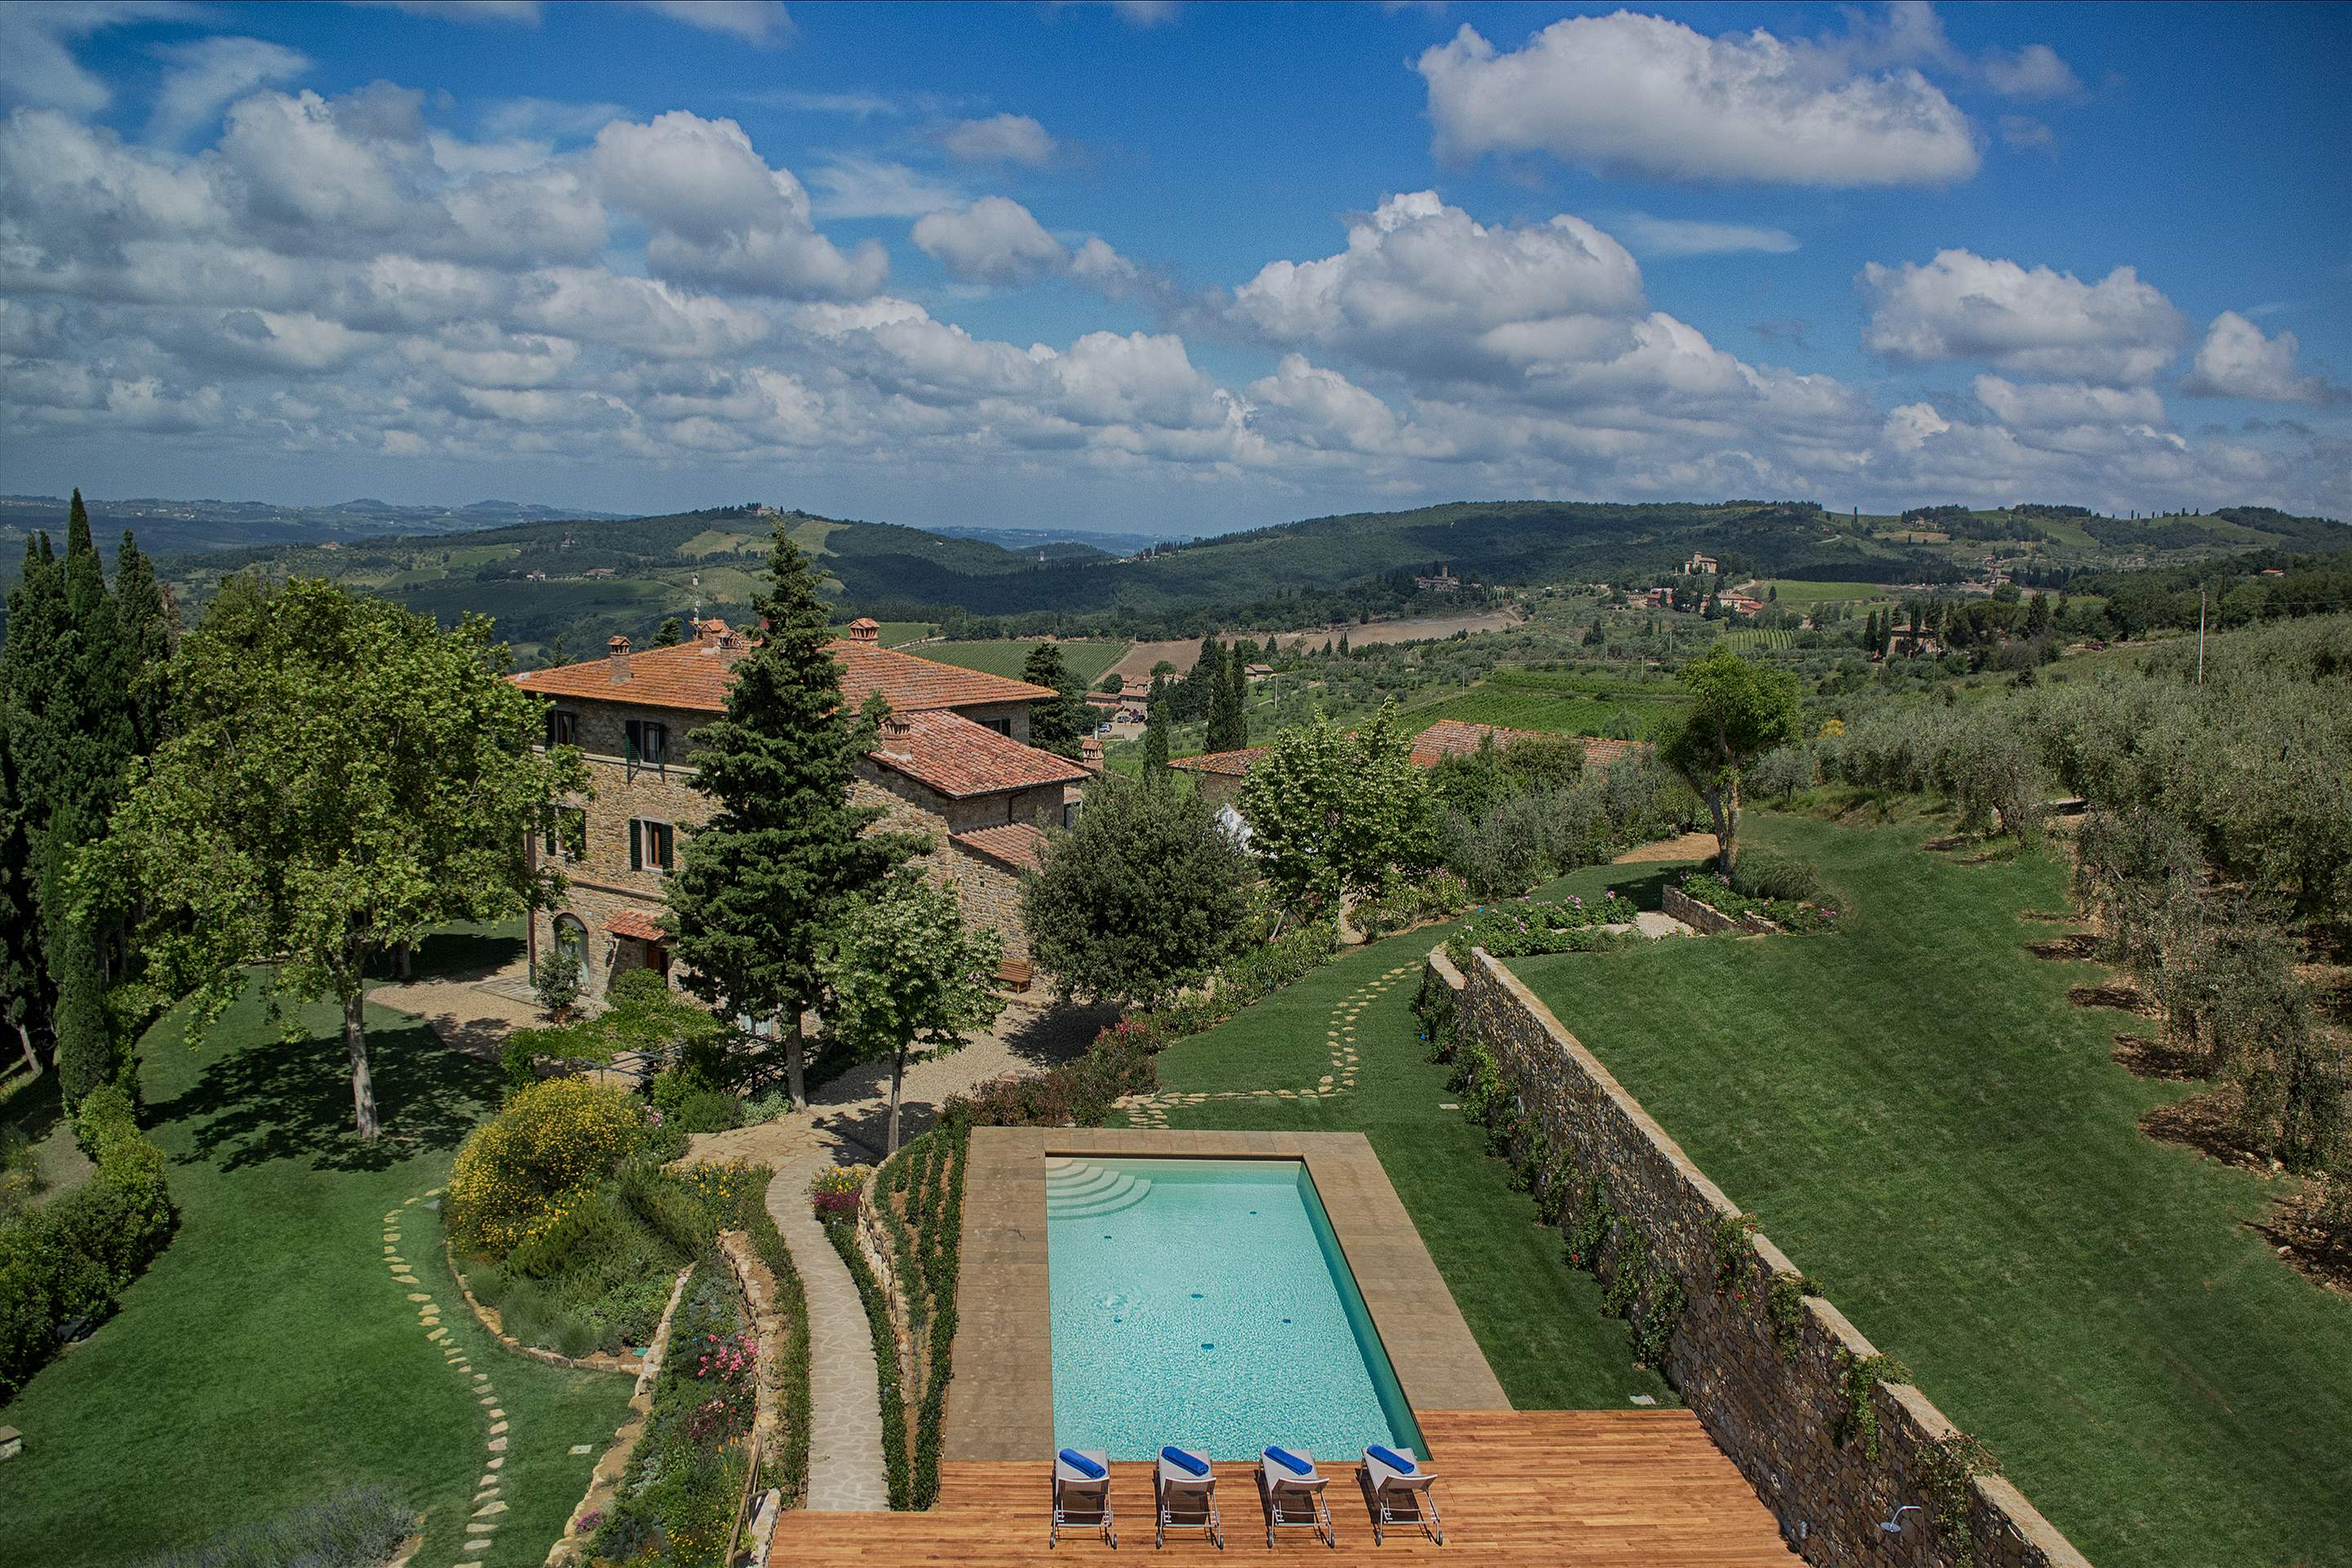 Villa La Valetta, Apt Rosa + 2 Bedrooms, 3 bedroom villa in Chianti & Countryside, Tuscany Photo #17